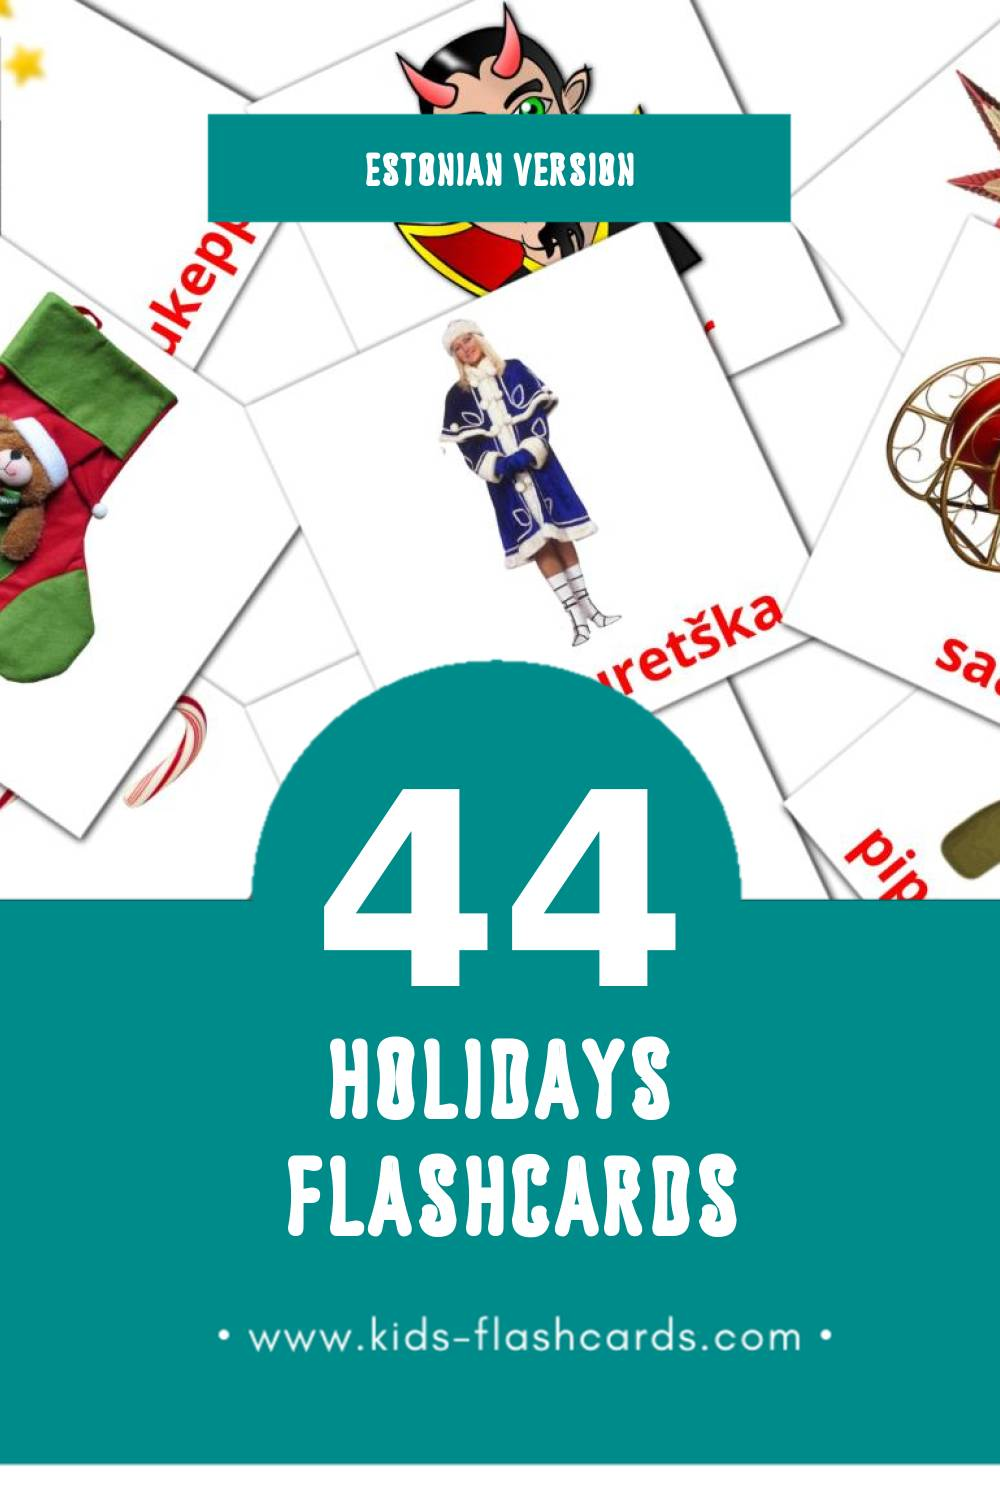 Visual Pühad Flashcards for Toddlers (28 cards in Estonian)